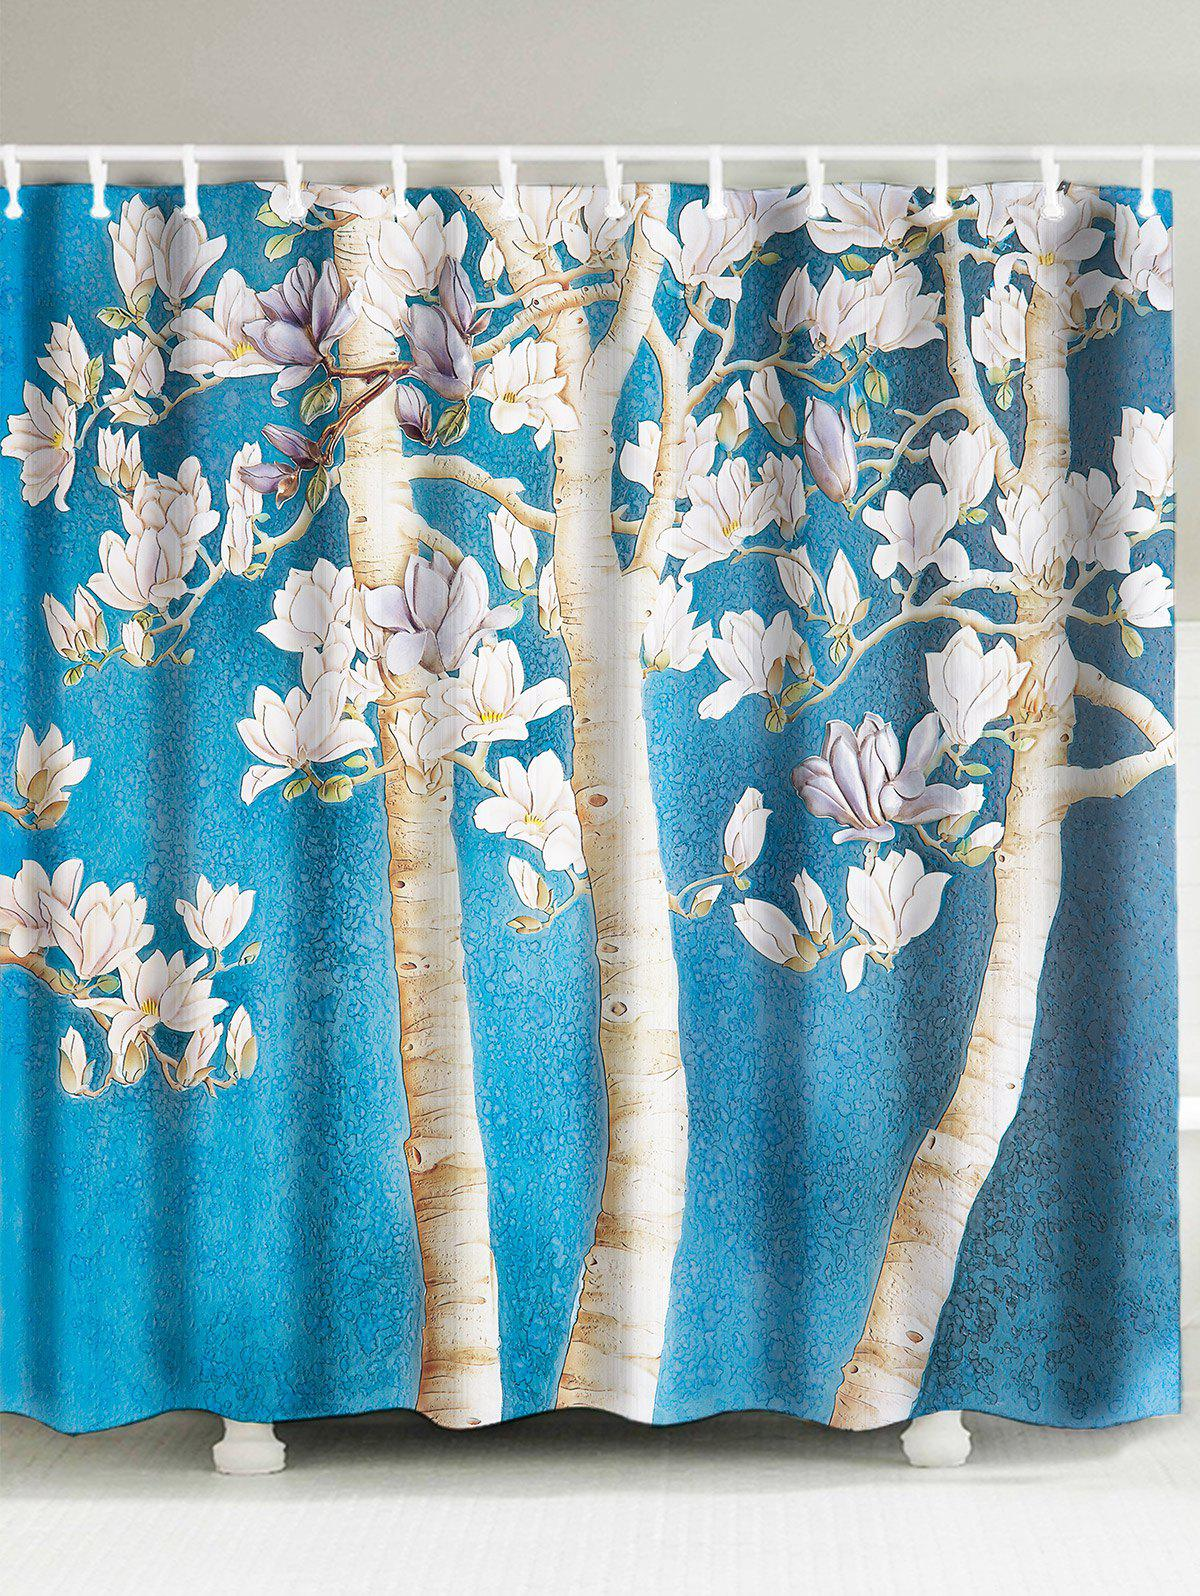 2018 Peach Blossom Shower Curtain LIGHT BLUE W INCH L INCH In Shower ...